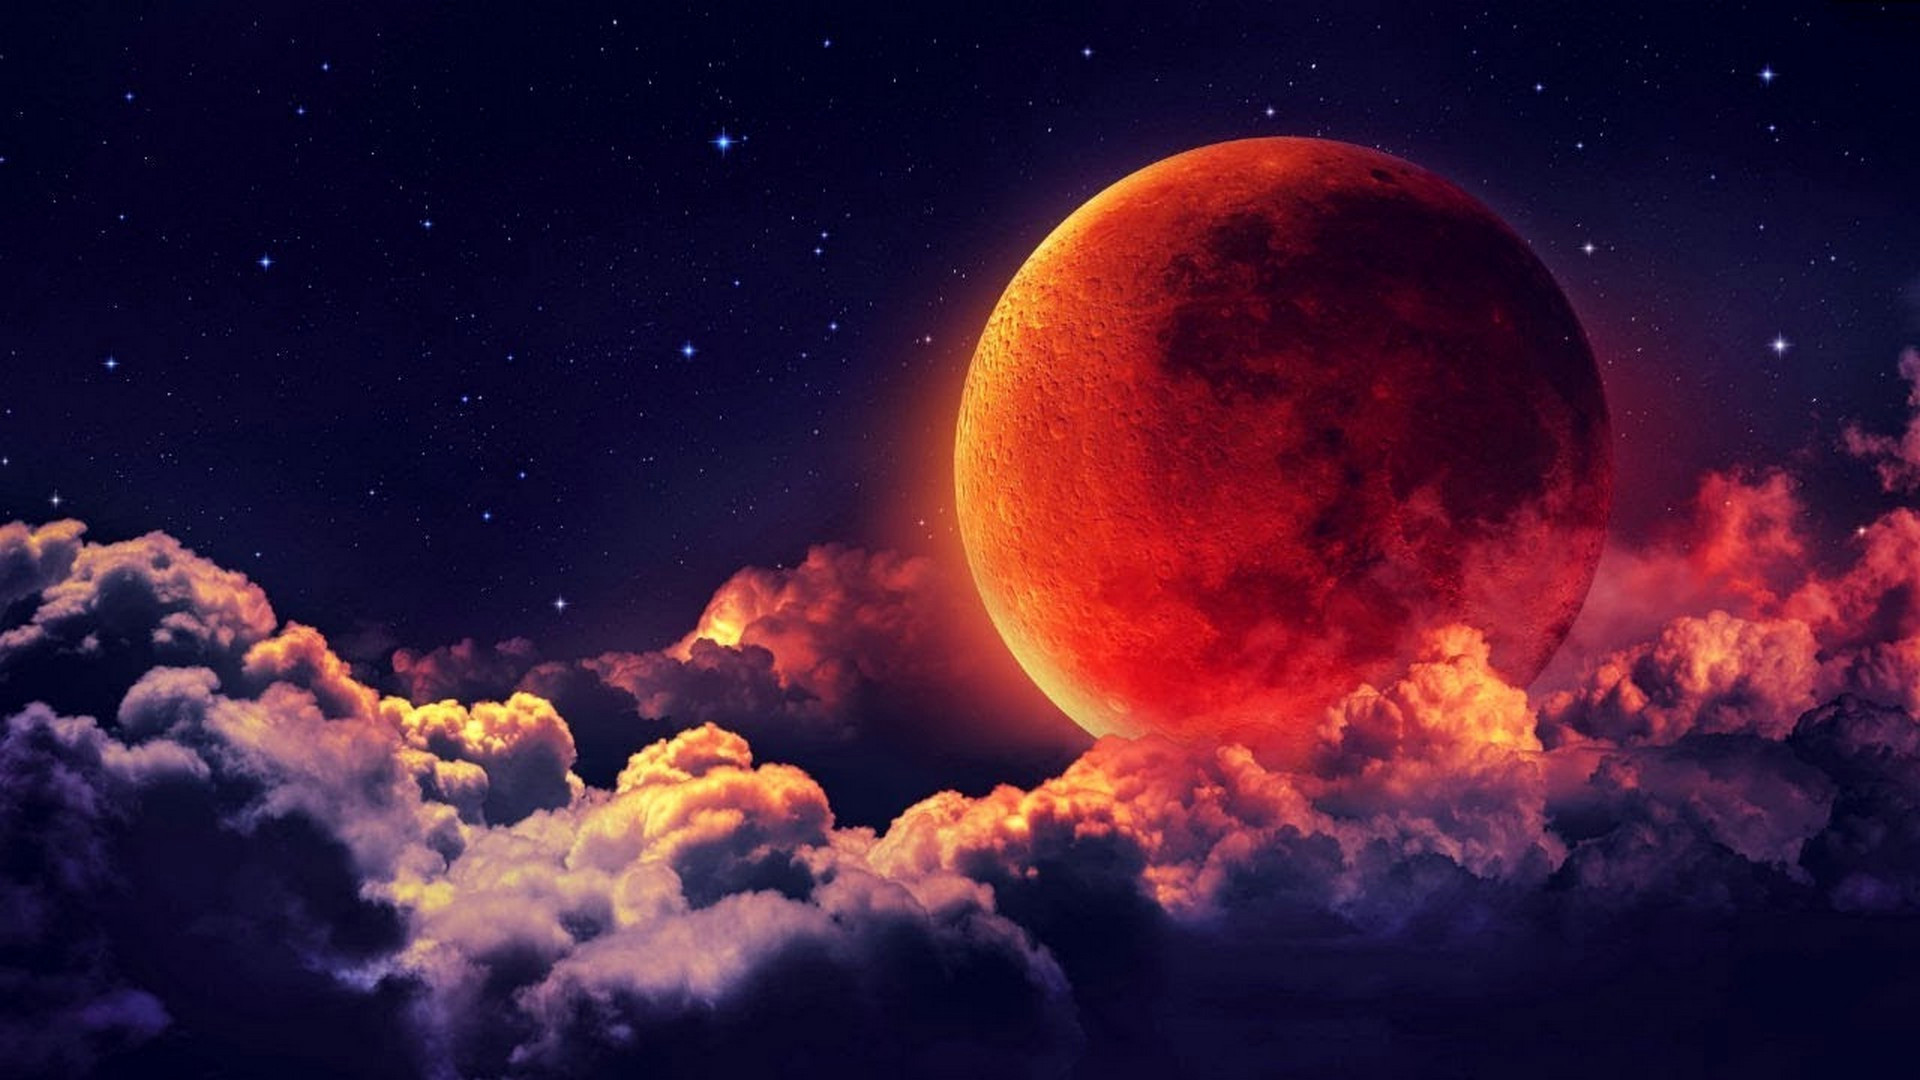 Lunar Eclipse Wallpapers 69 Background Pictures